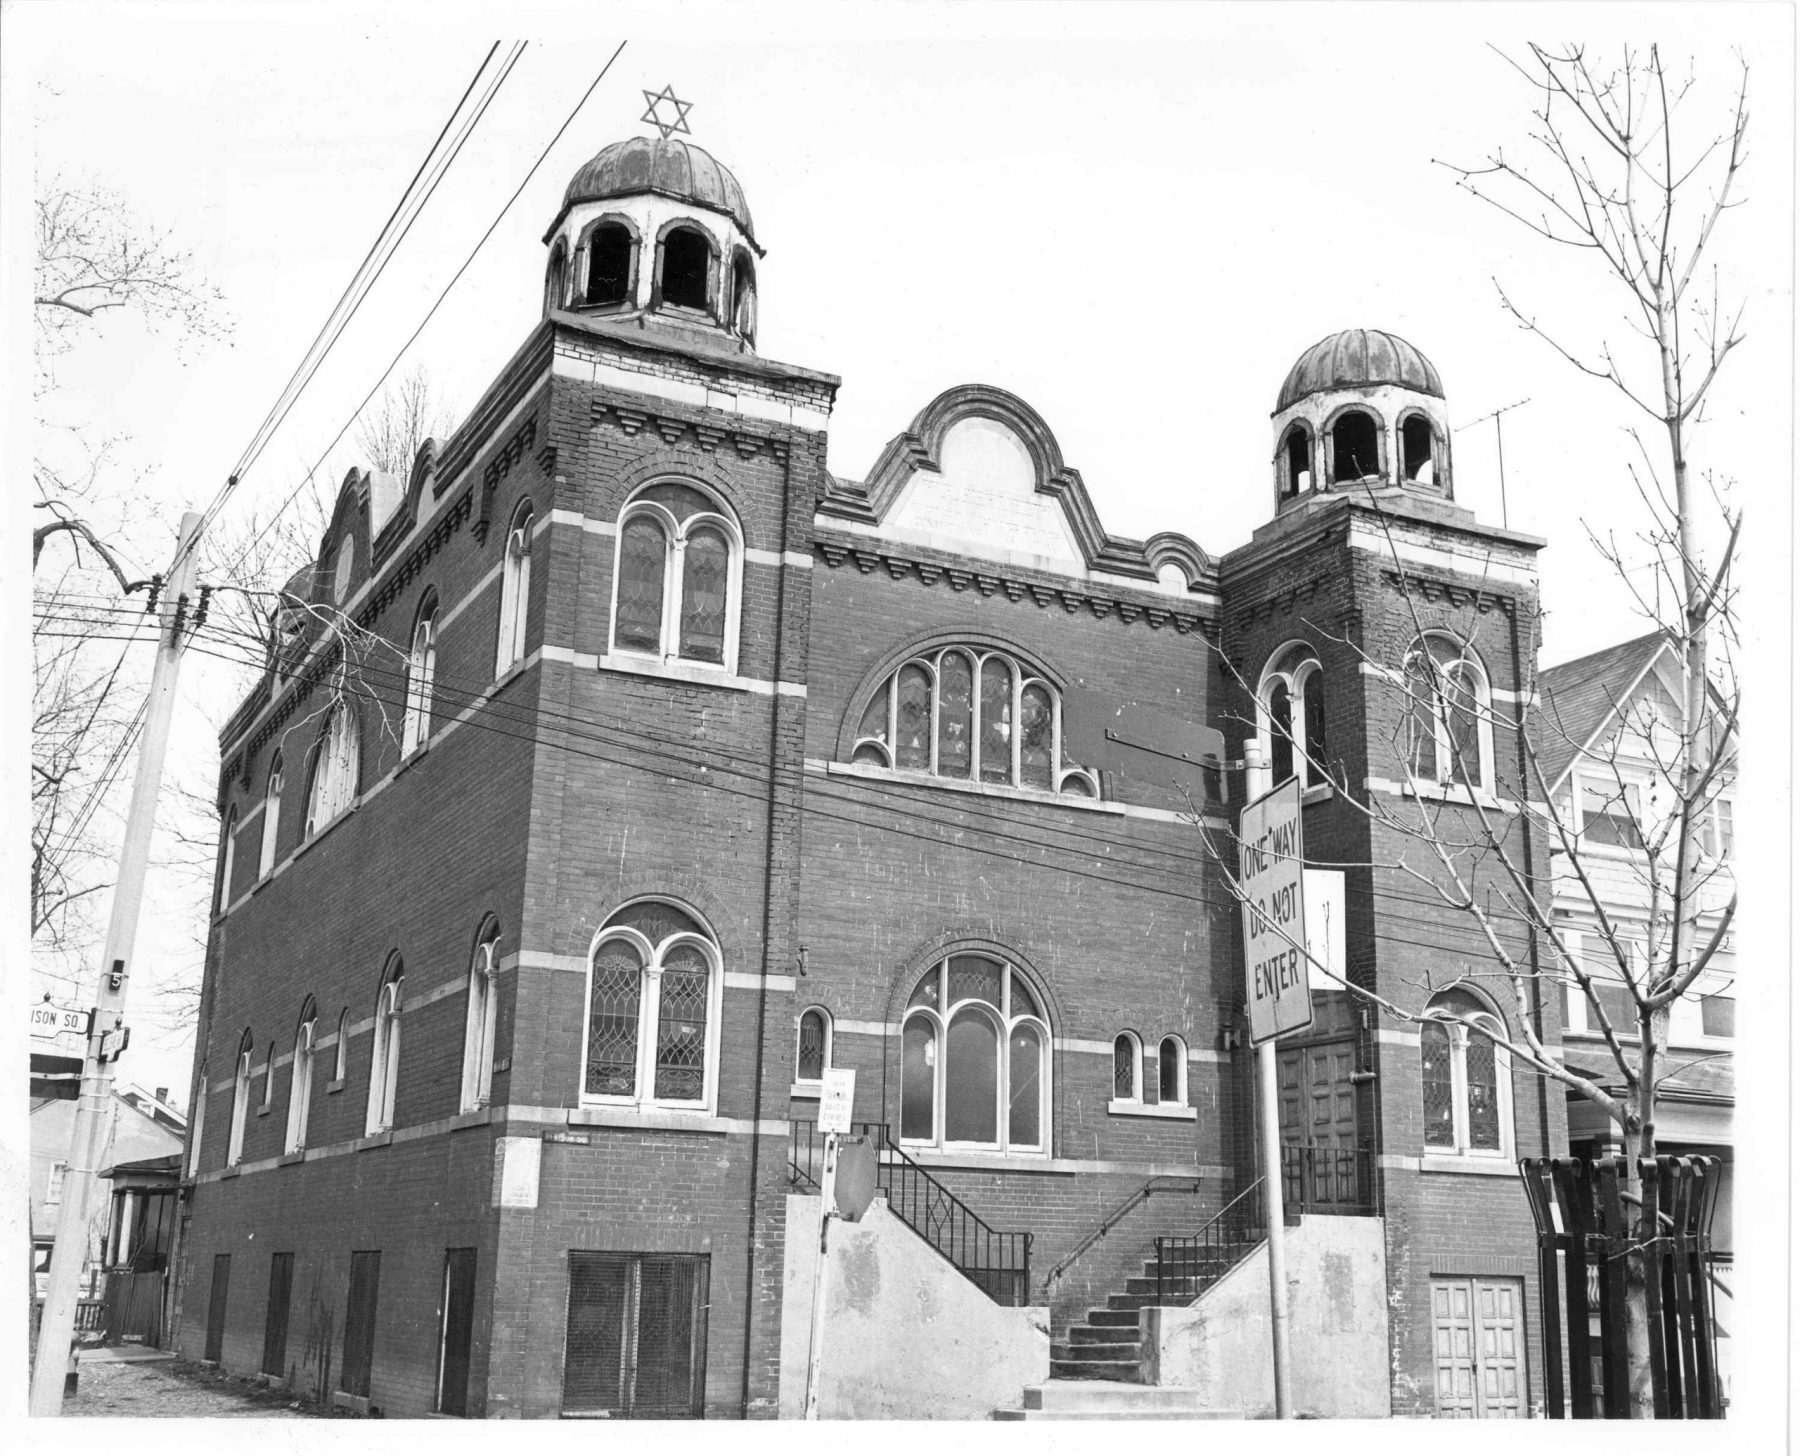 The Kiever Shul (synagogue) exterior, Toronto, 1974. The Kiever had its beginnings on Centre Avenue in the Ward. In 1923, the Kiever congregation raised enough funds to build a synagogue large enough to accommodate its growing membership. Benjamin Swartz, a Jewish architect was contracted to design the current synagogue at 25 Bellevue, which replaced the two houses that had been used for services. The Synagogue was completed in 1927, after three years of construction.   OJA, item 71.